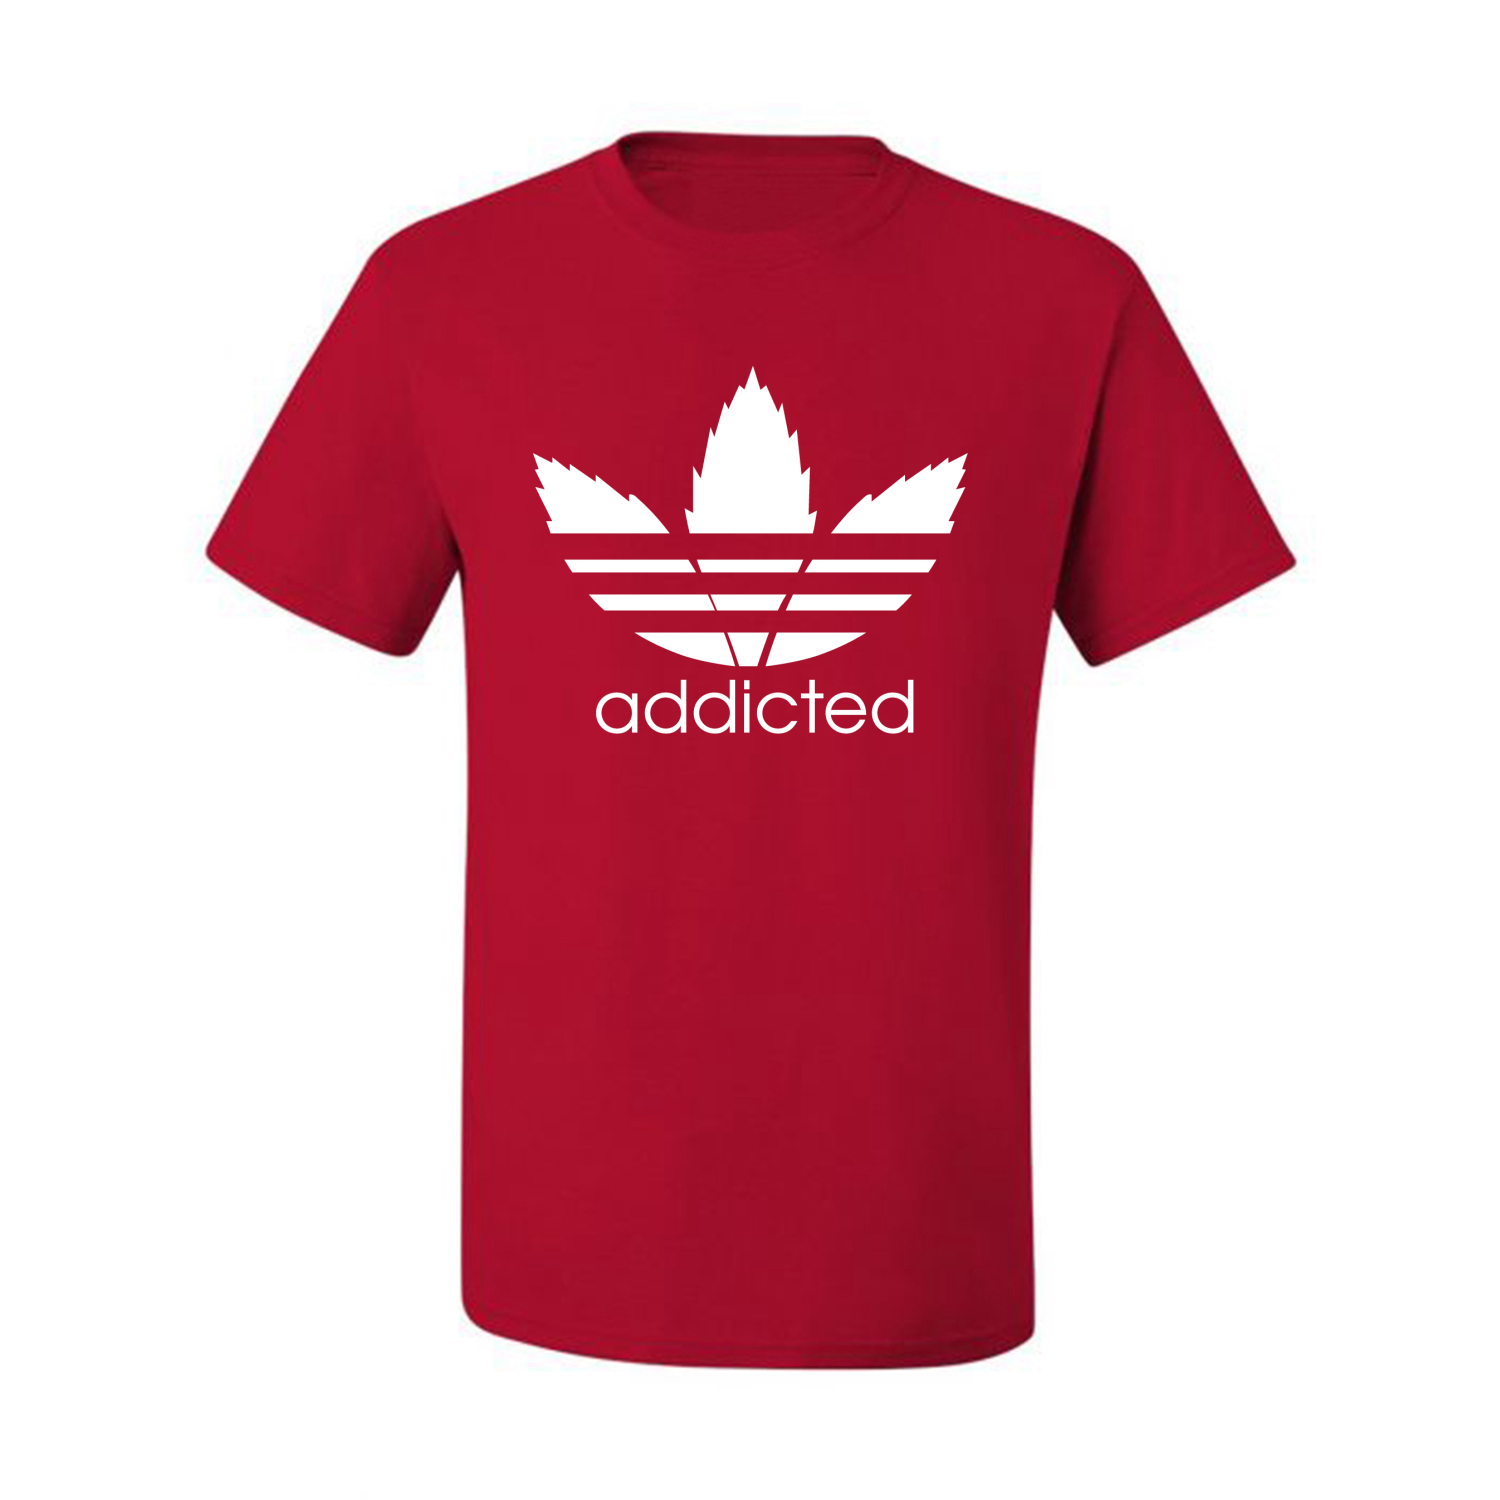 Addicted-White-Pot-Leaf-Mens-Weed-T-Shirt-Graphic-Parody-Tee thumbnail 34